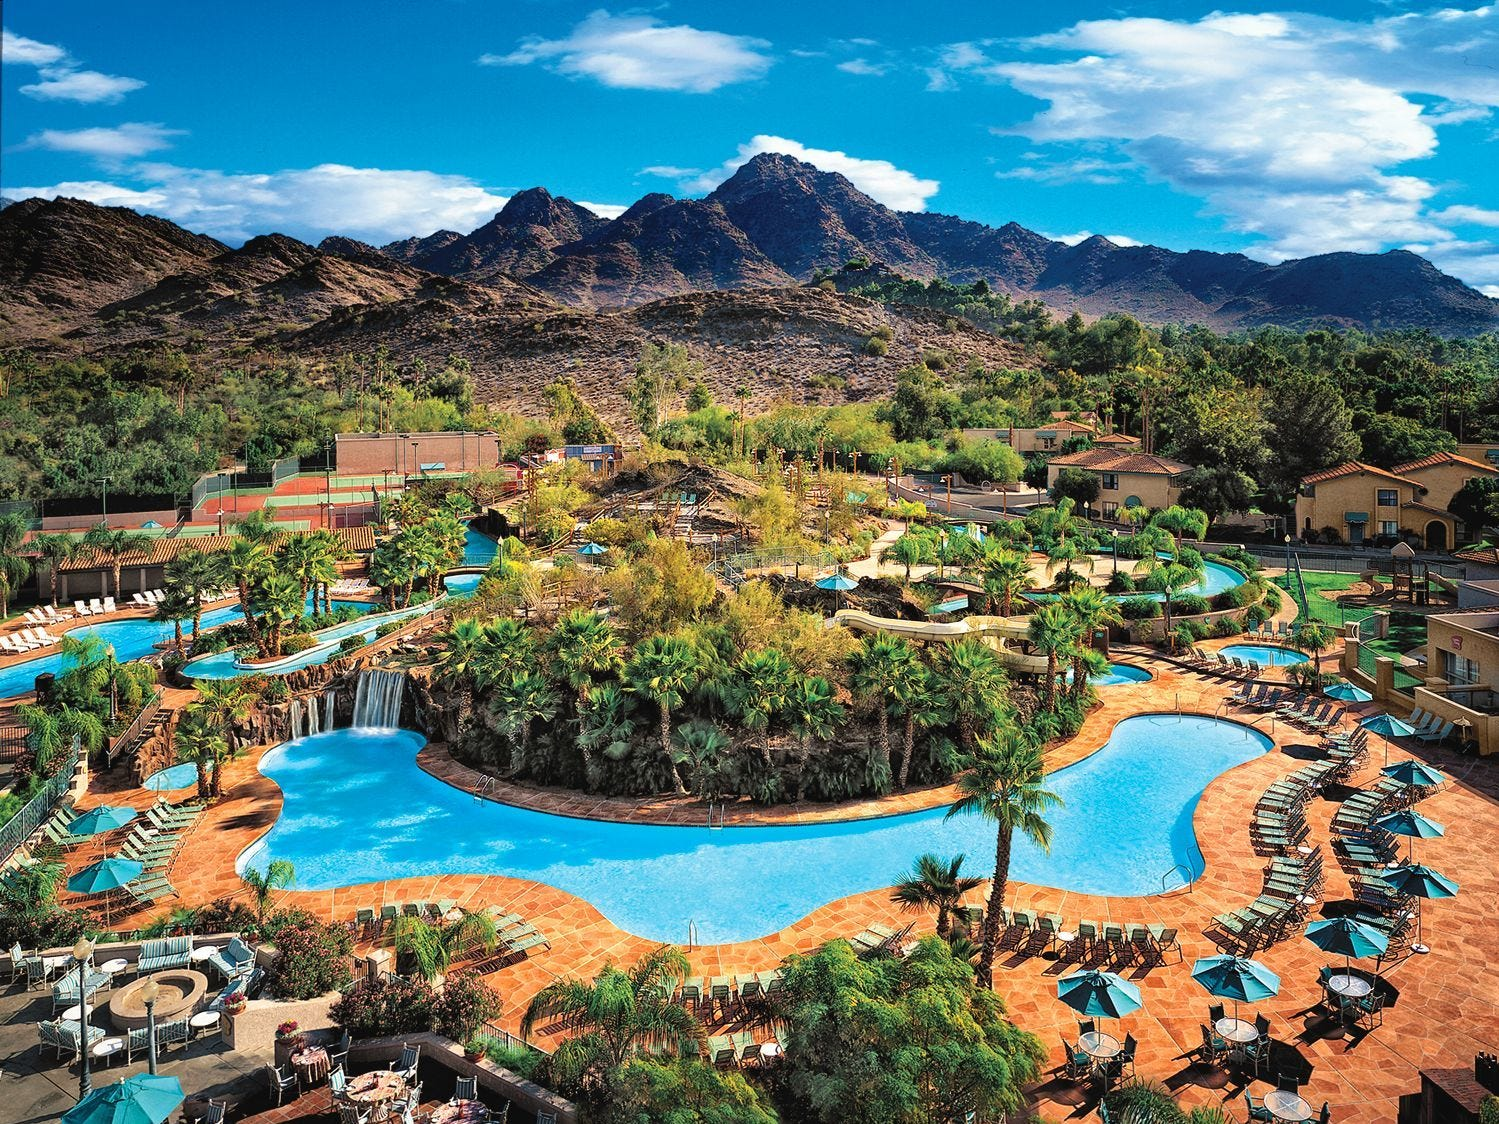 Pointe Hilton Squaw Peak, Phoenix |   Deal: Rates stating at $125 a night.  Activities: The resort's River Ranch pool complex will feature games, dive-in movies, arts and crafts, scavenger hunts and music.  Details: 602-997-2626, squawpeakhilton.com.